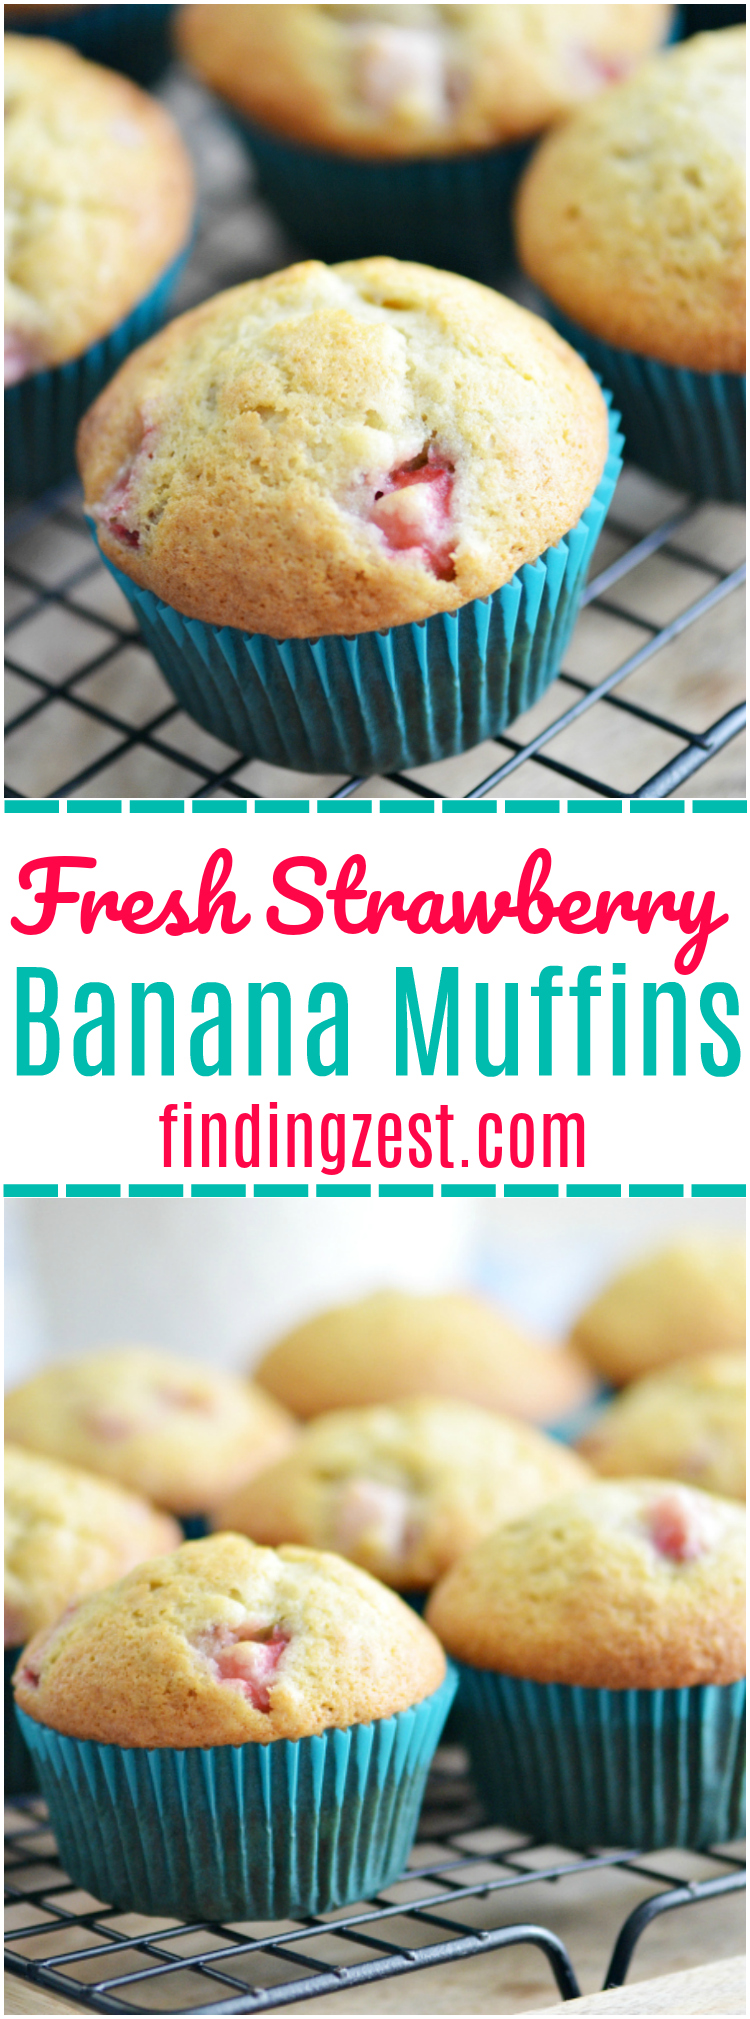 If you love homemade muffins, you must give this fresh strawberry banana muffins recipe a try for your next brunch or breakfast. These are the best strawberry muffins I've ever tried. Packed with flavor, it is a great muffin recipe for kids!